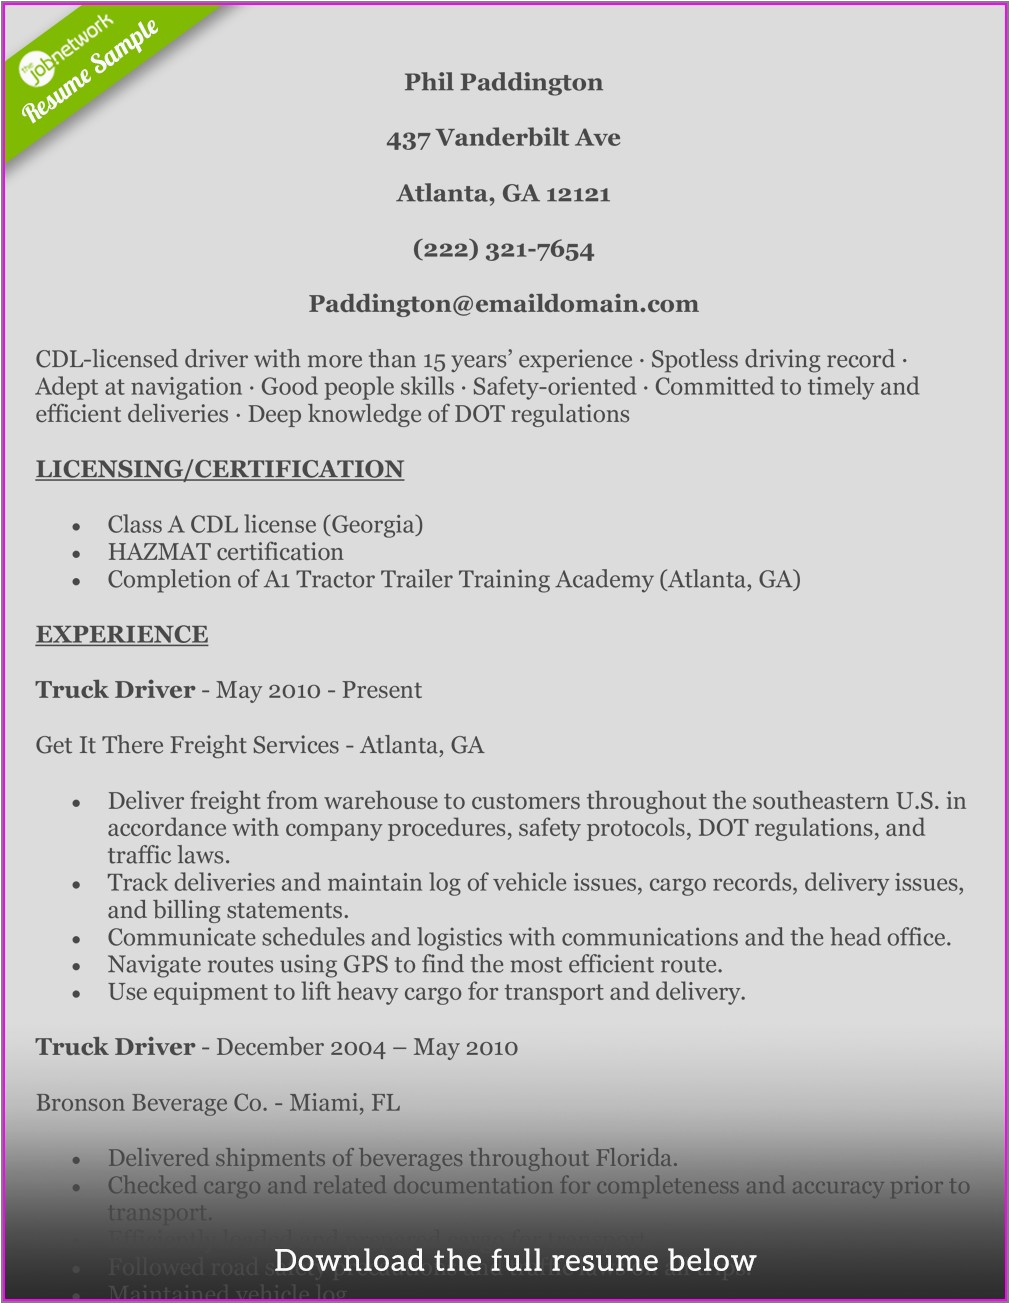 resume for truck driver with no experience